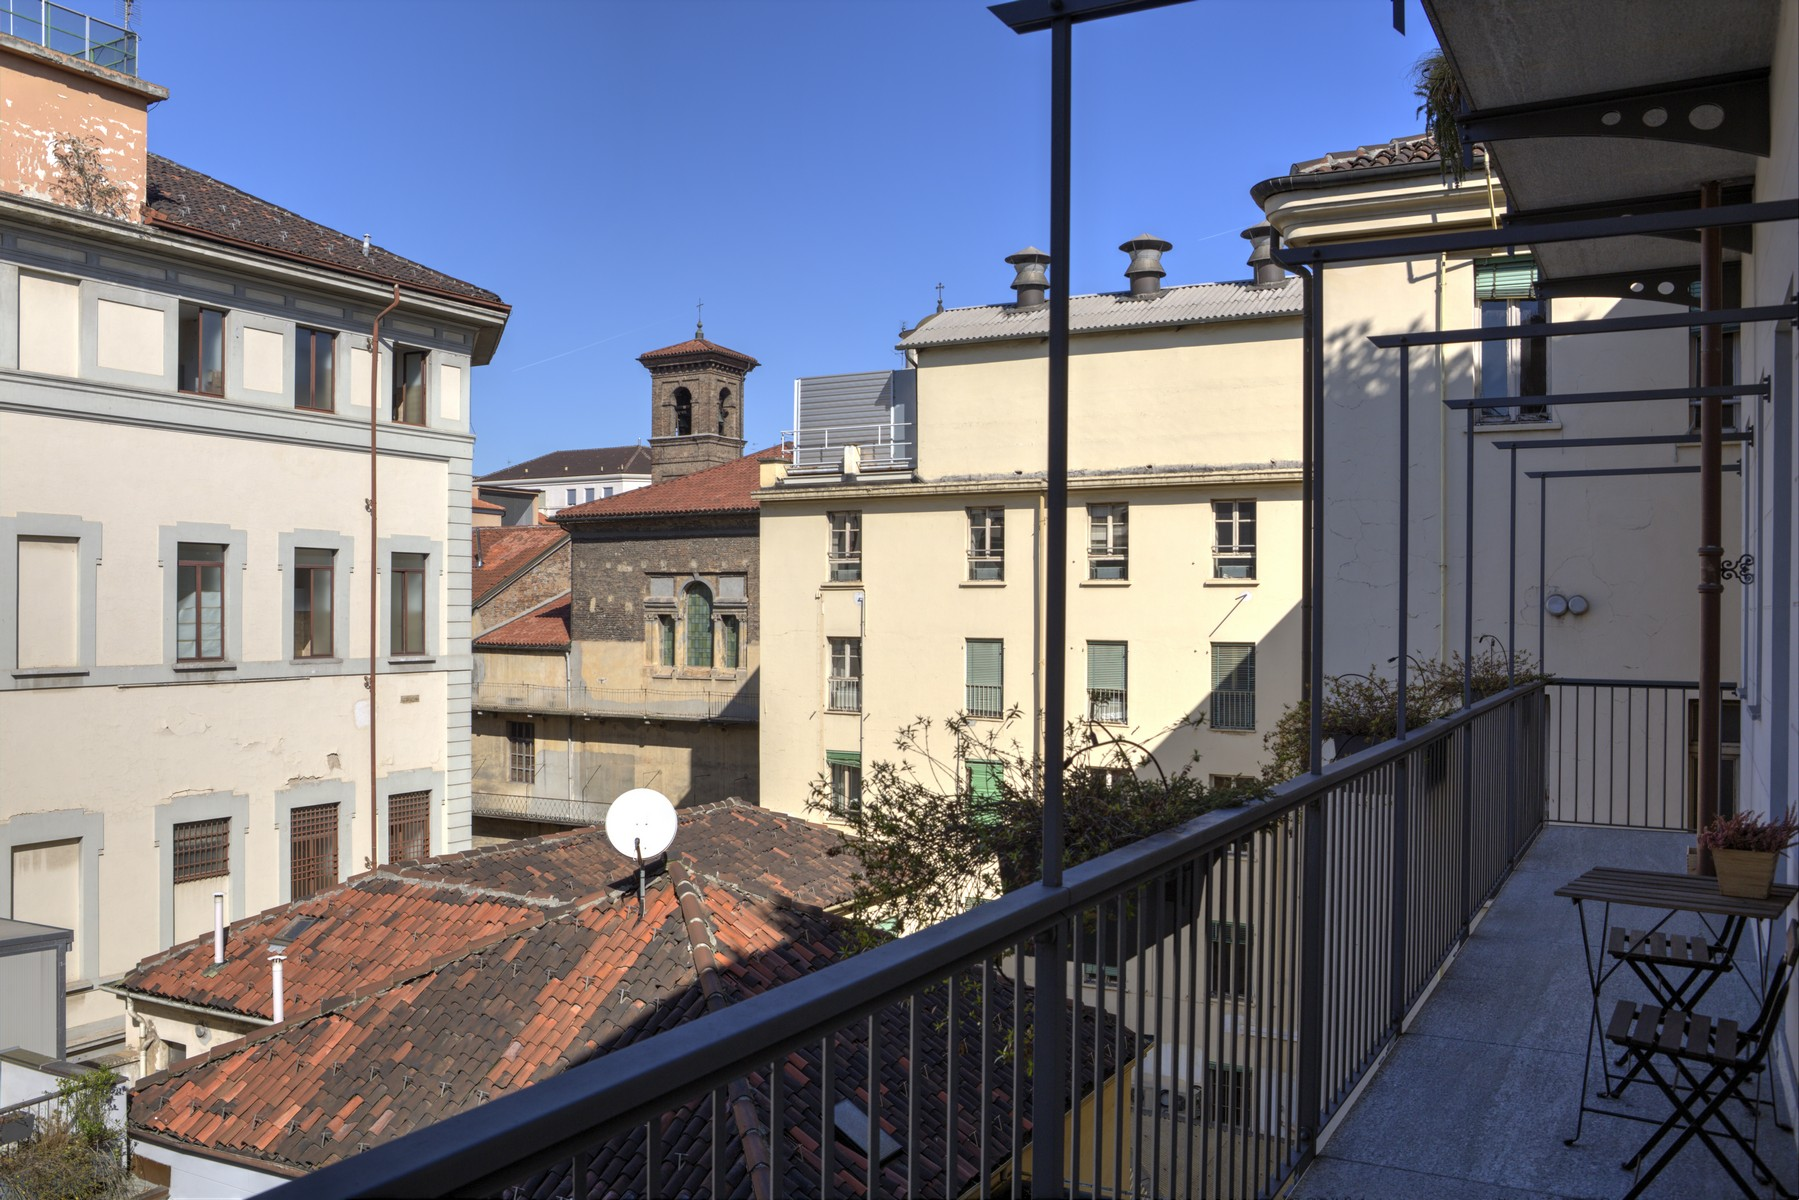 Additional photo for property listing at Exclusive Apartment a short walk from Piazza San Carlo Via Alfieri Turin, Turin 10121 Italie